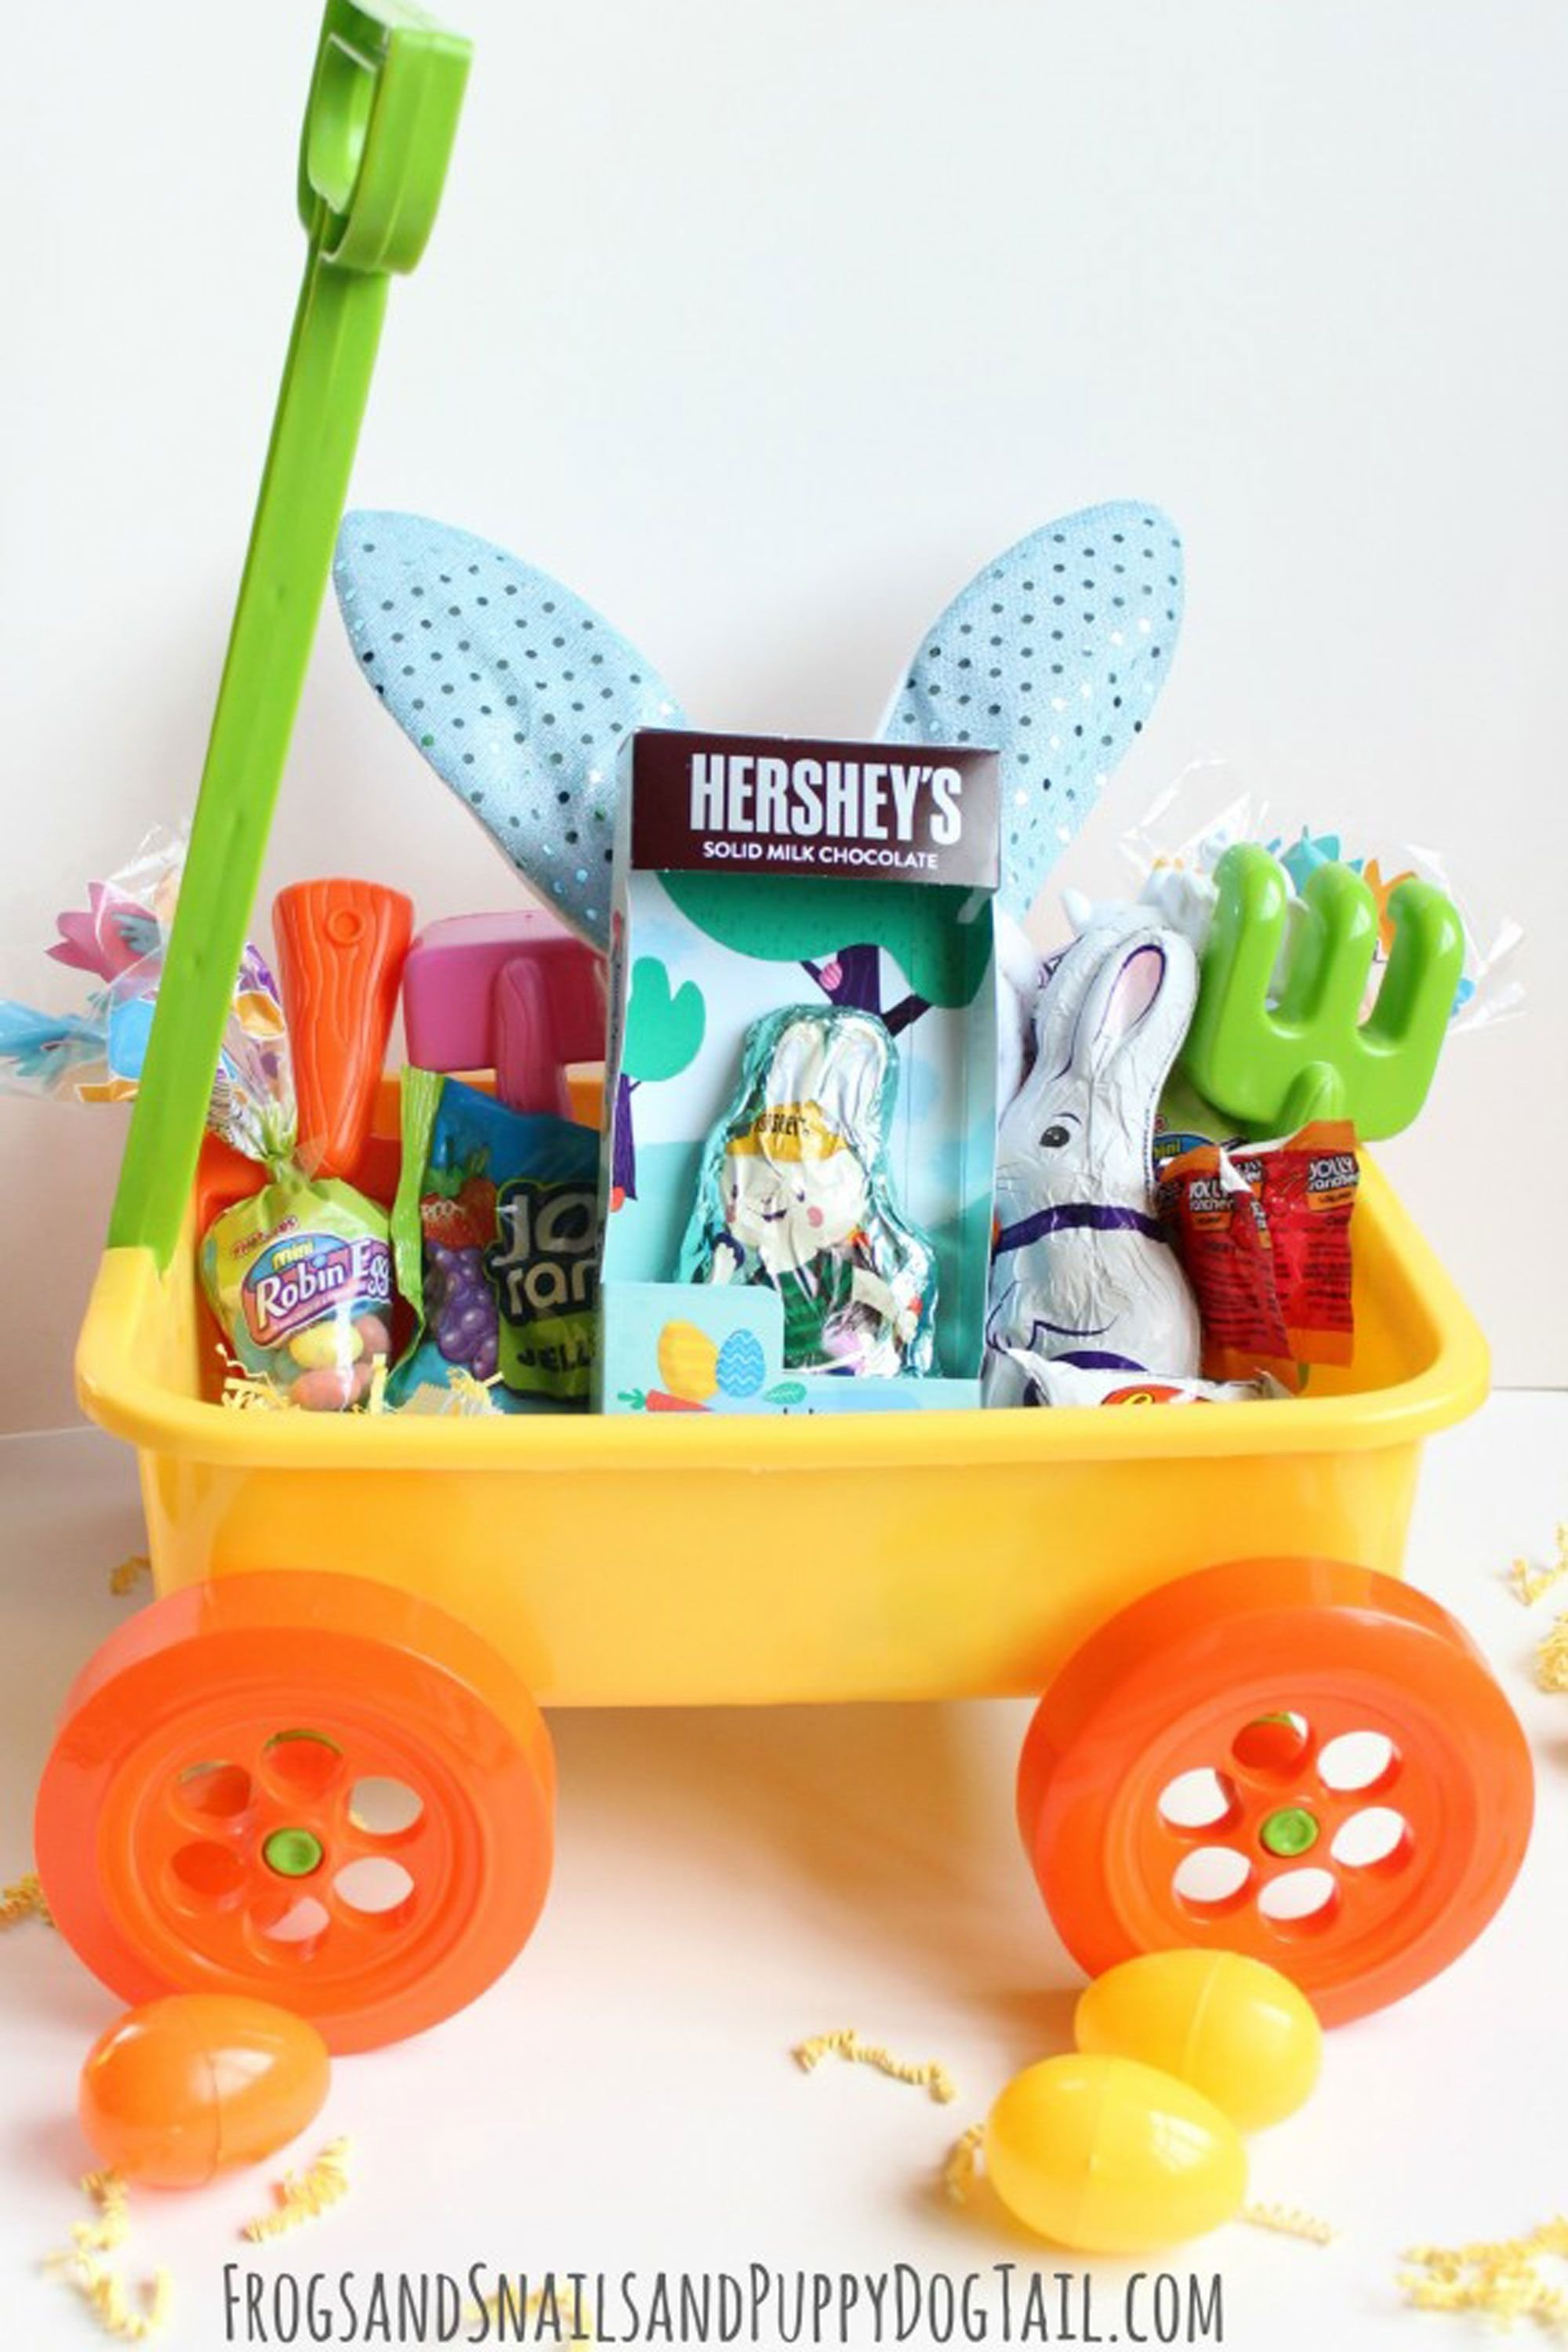 10 Famous Easter Basket Ideas For Toddlers 16 easter basket ideas for kids best easter gifts for babies 10 2020